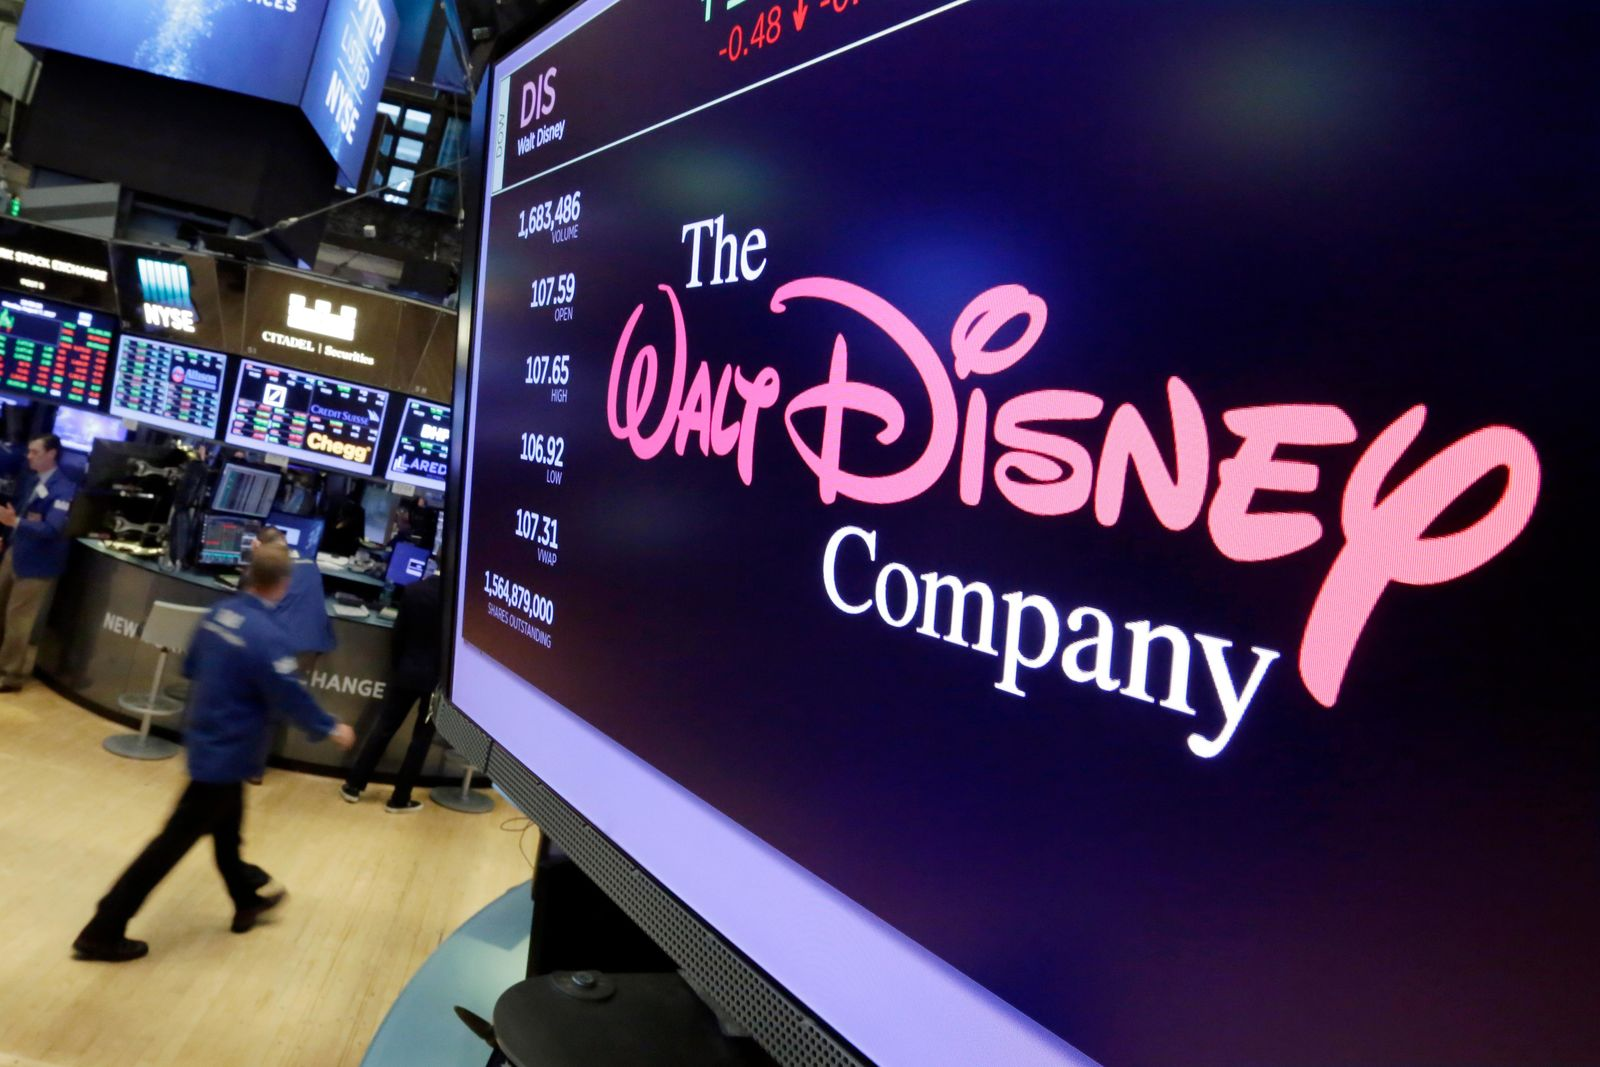 FILE - In this Monday, Aug. 7, 2017, file photo, The Walt Disney Co. logo appears on a screen above the floor of the New York Stock Exchange. Disney is seeking new frontiers. (AP Photo/Richard Drew, File)